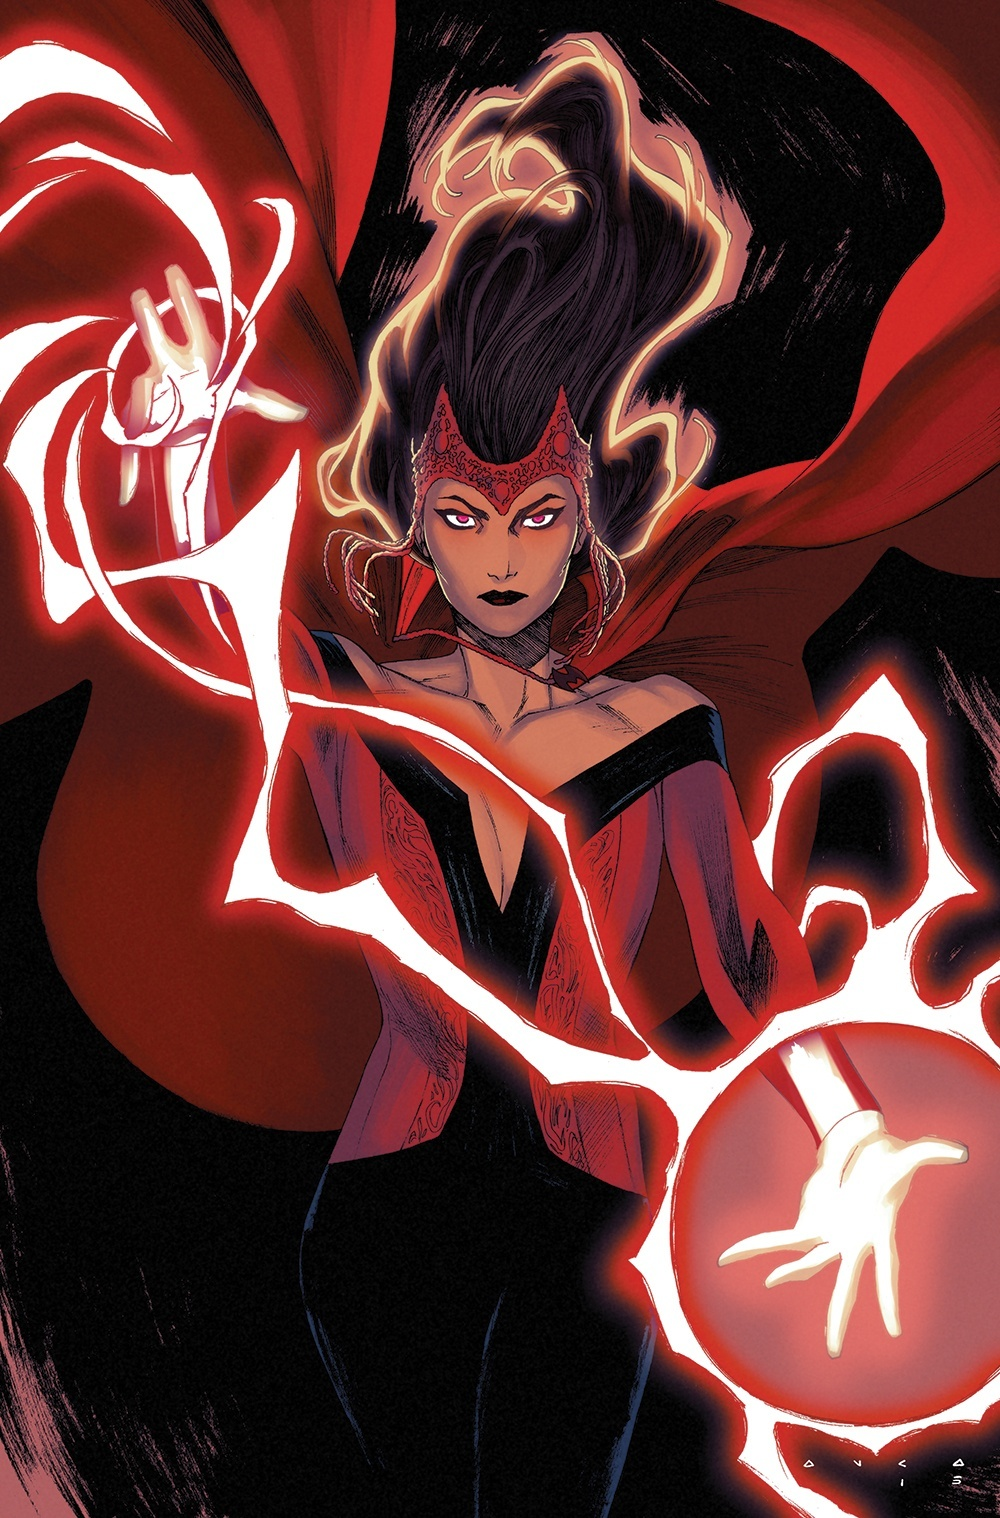 How do the Scarlet Witch powers work on Marvel Comics? - Quora